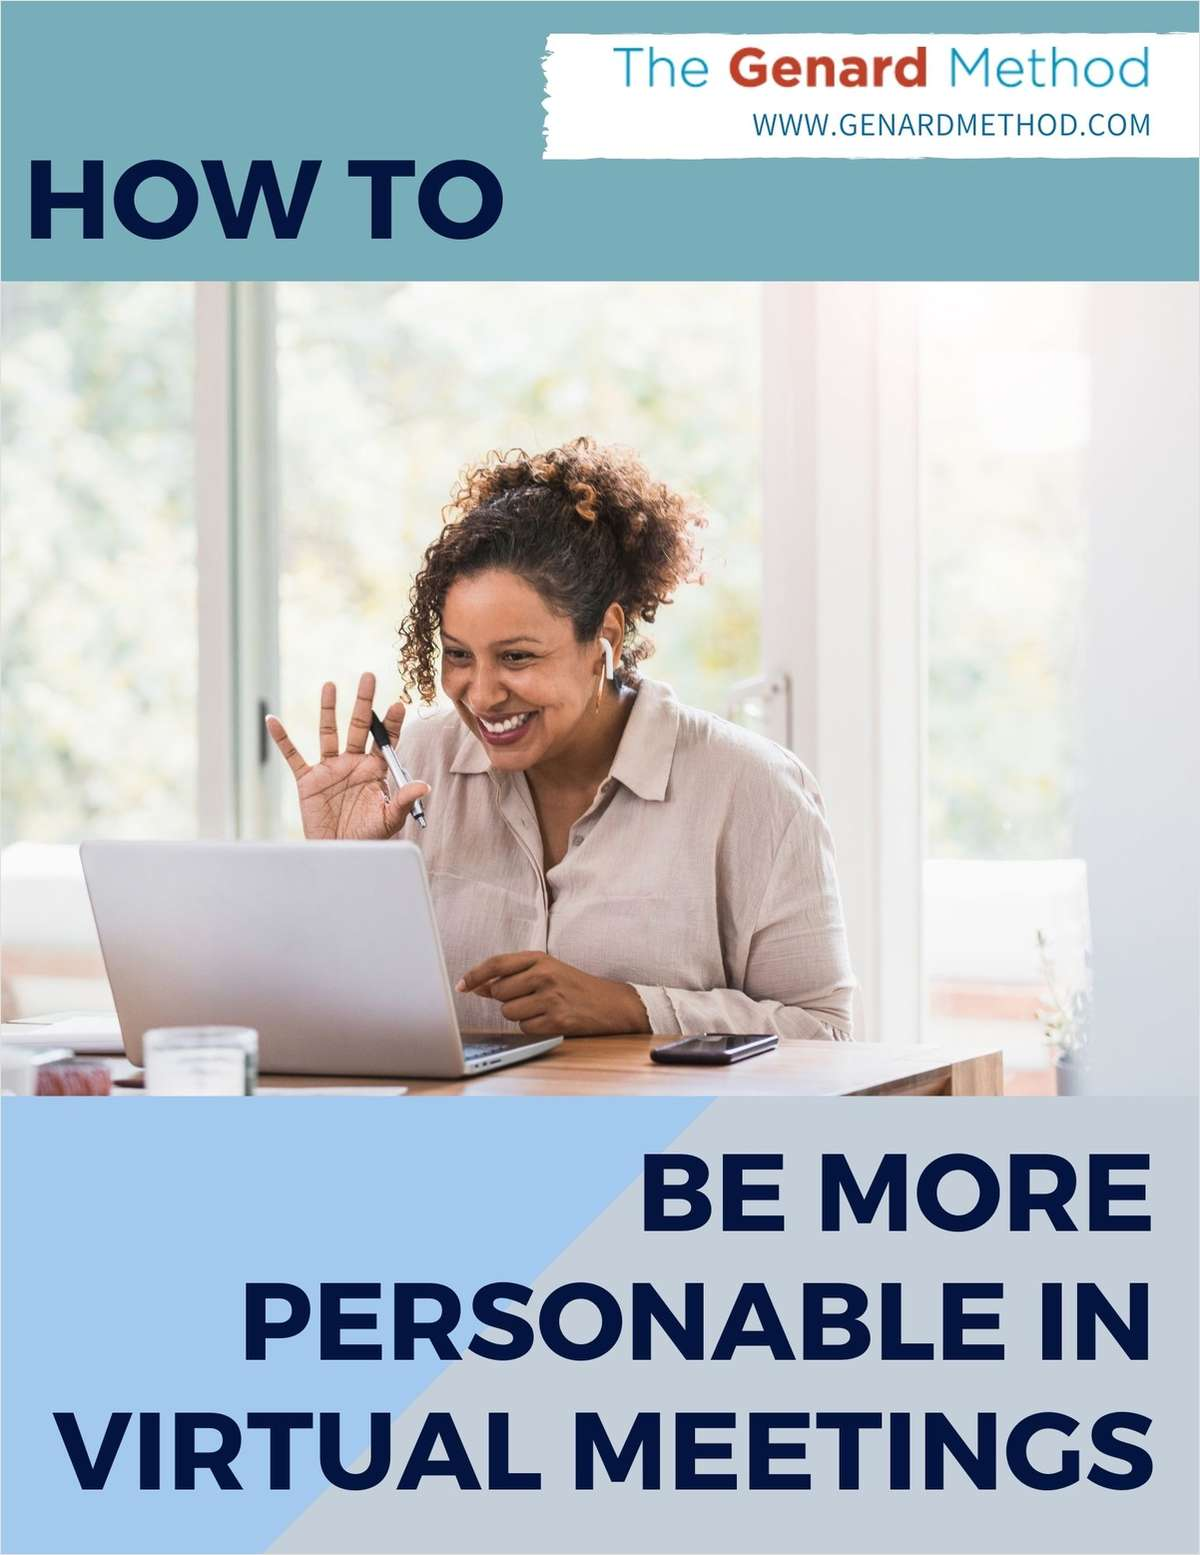 How to Be More Personable in Virtual Meetings